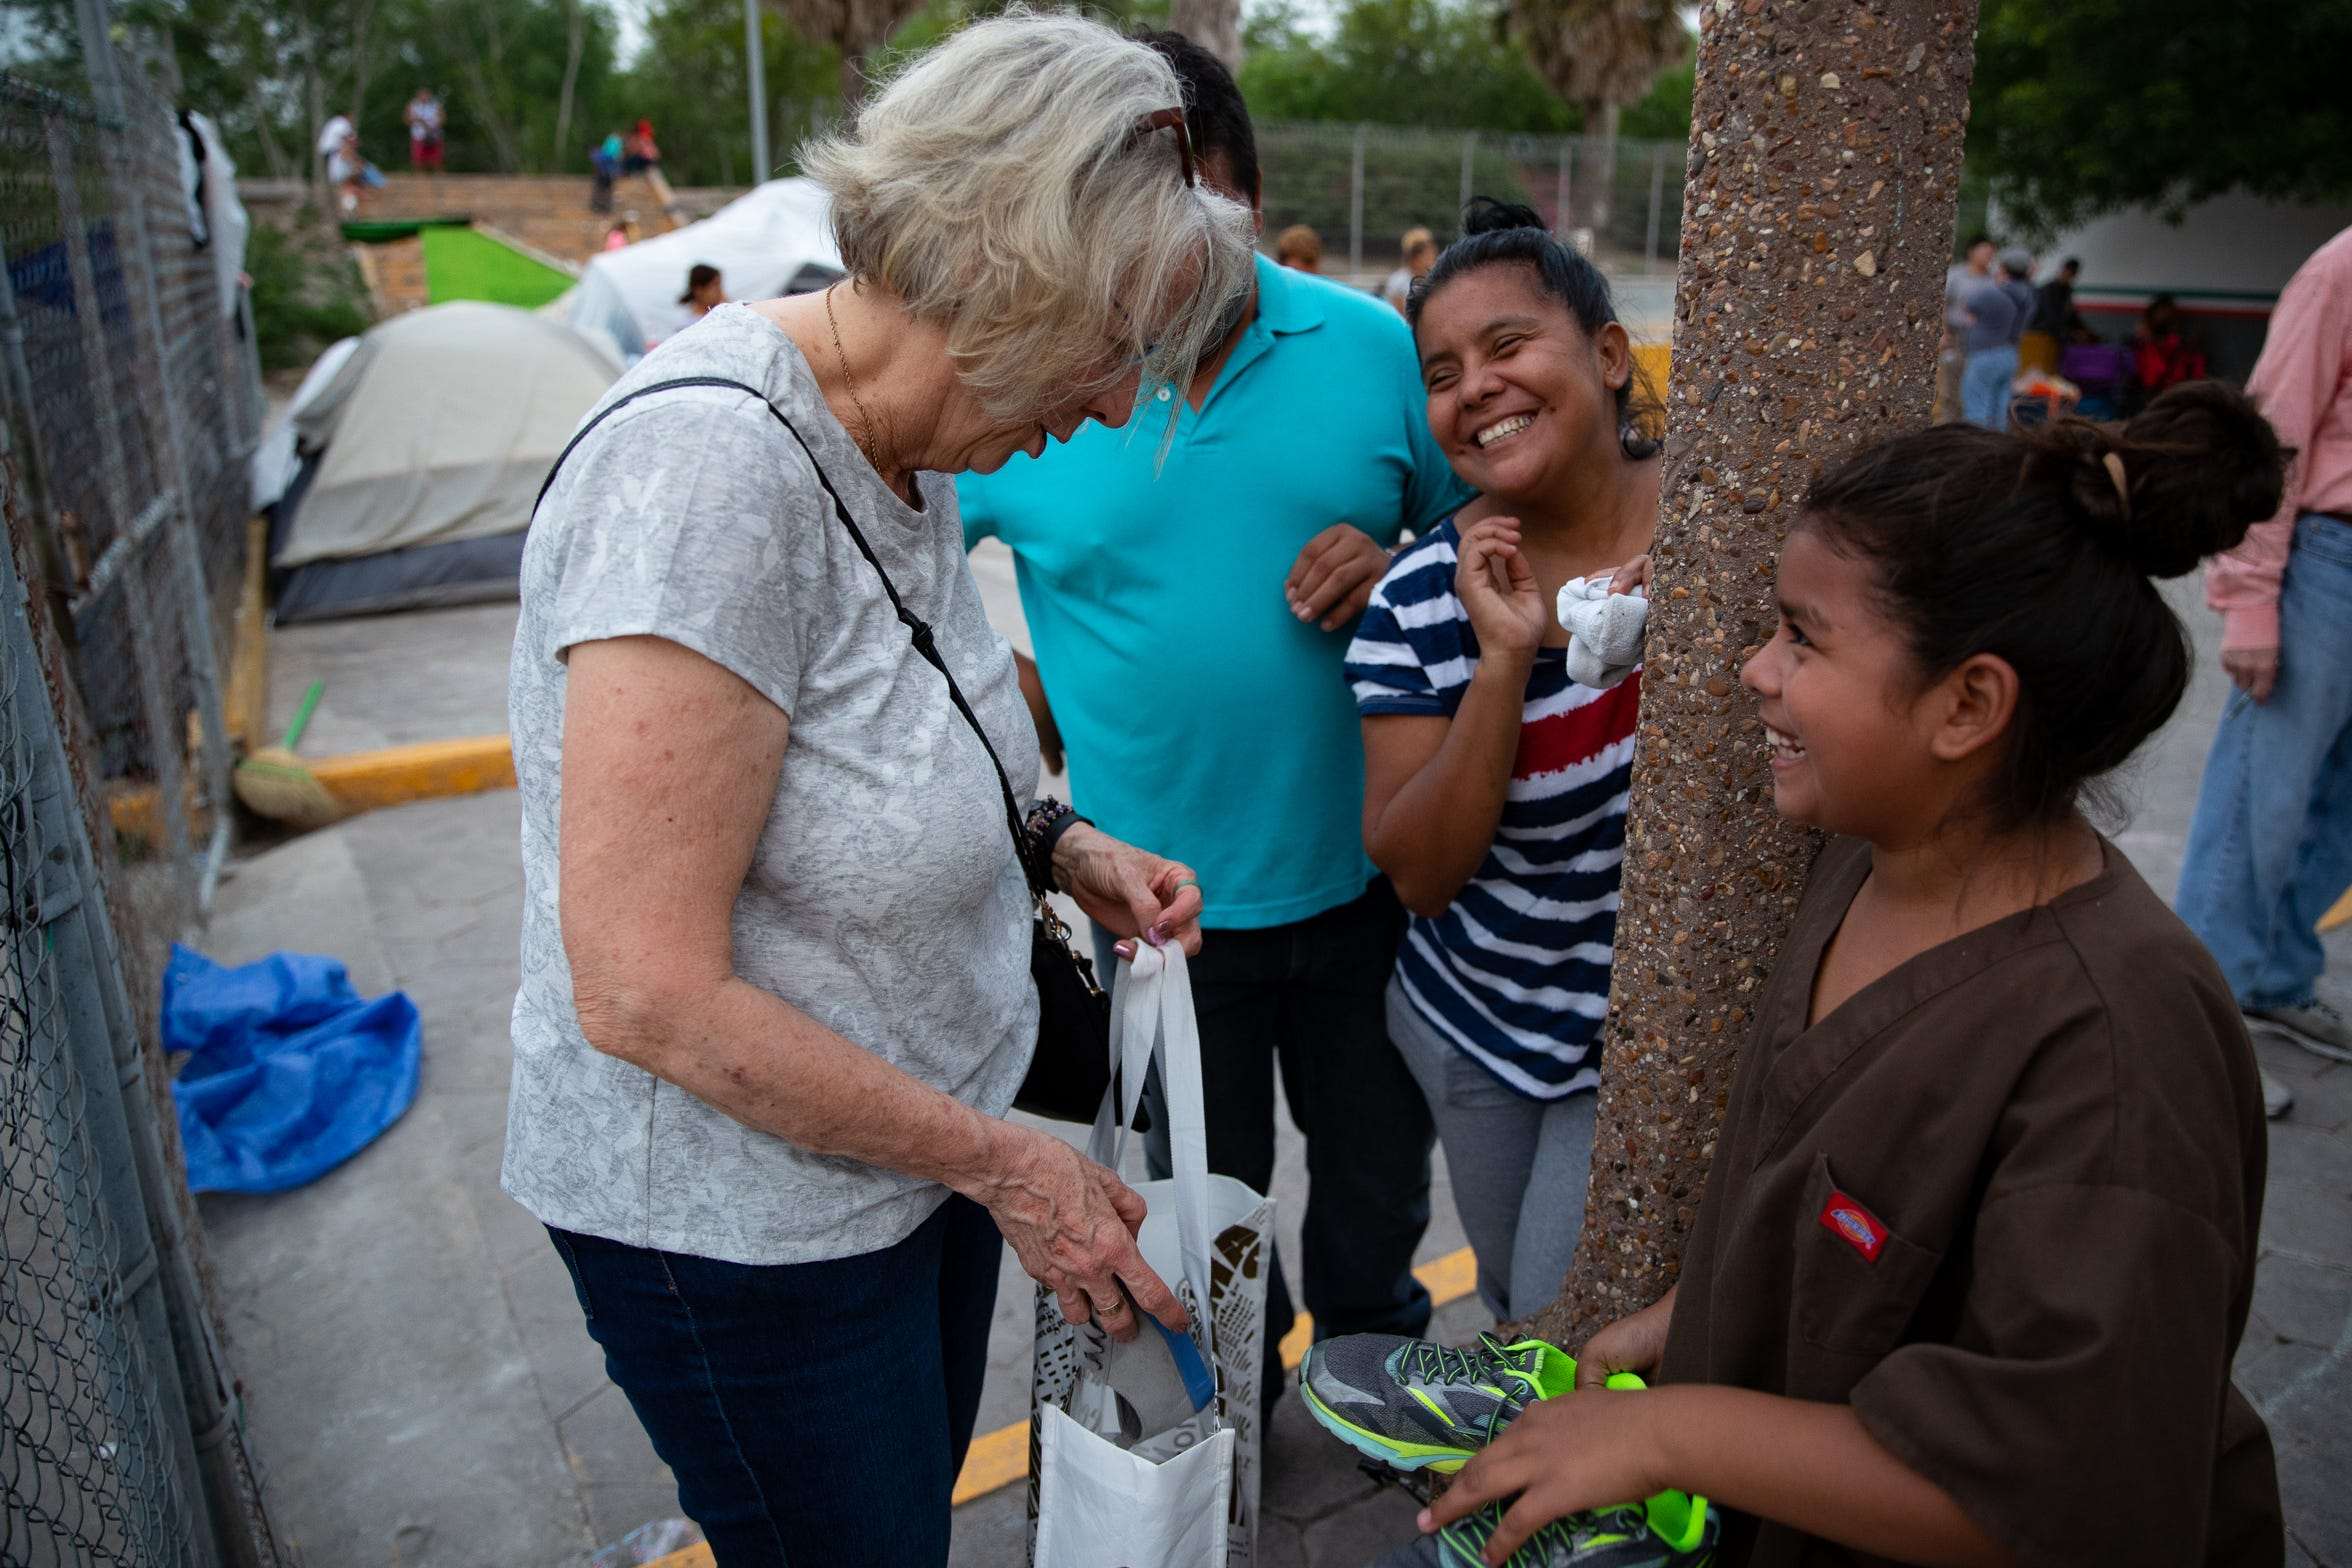 Ann Finch of Austin, Texas, hands a young migrant girl a pair of shoes as she stays in a makeshift camp next to the international bridge in Matamoros, Mexico waiting to seek asylum in the U.S on Thursday, April 4, 2019.